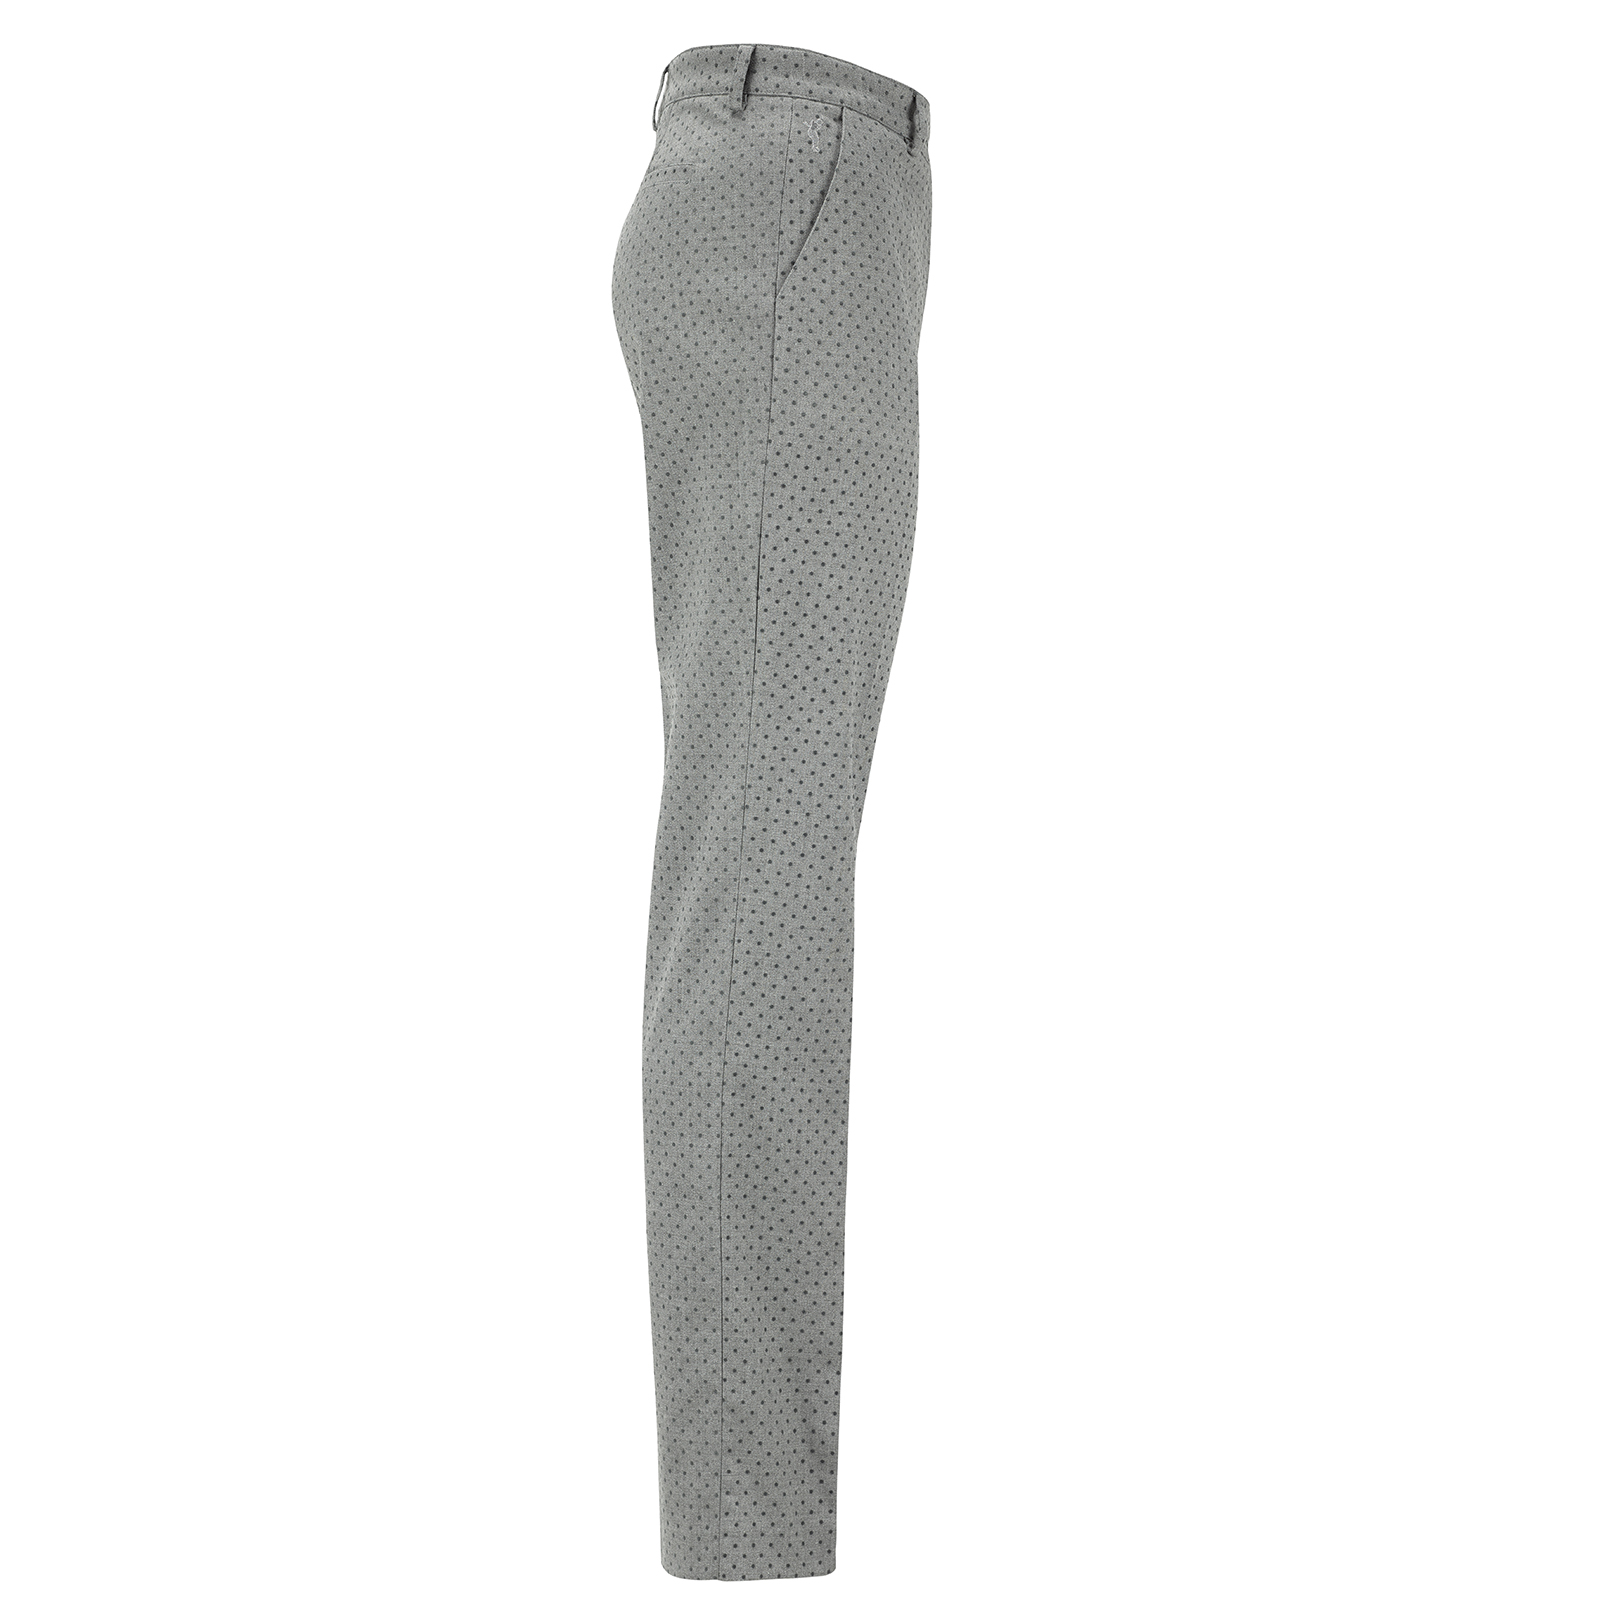 Damen 7/8 Slim-Fit Stretch-Golfhose mit gepunktetem Design